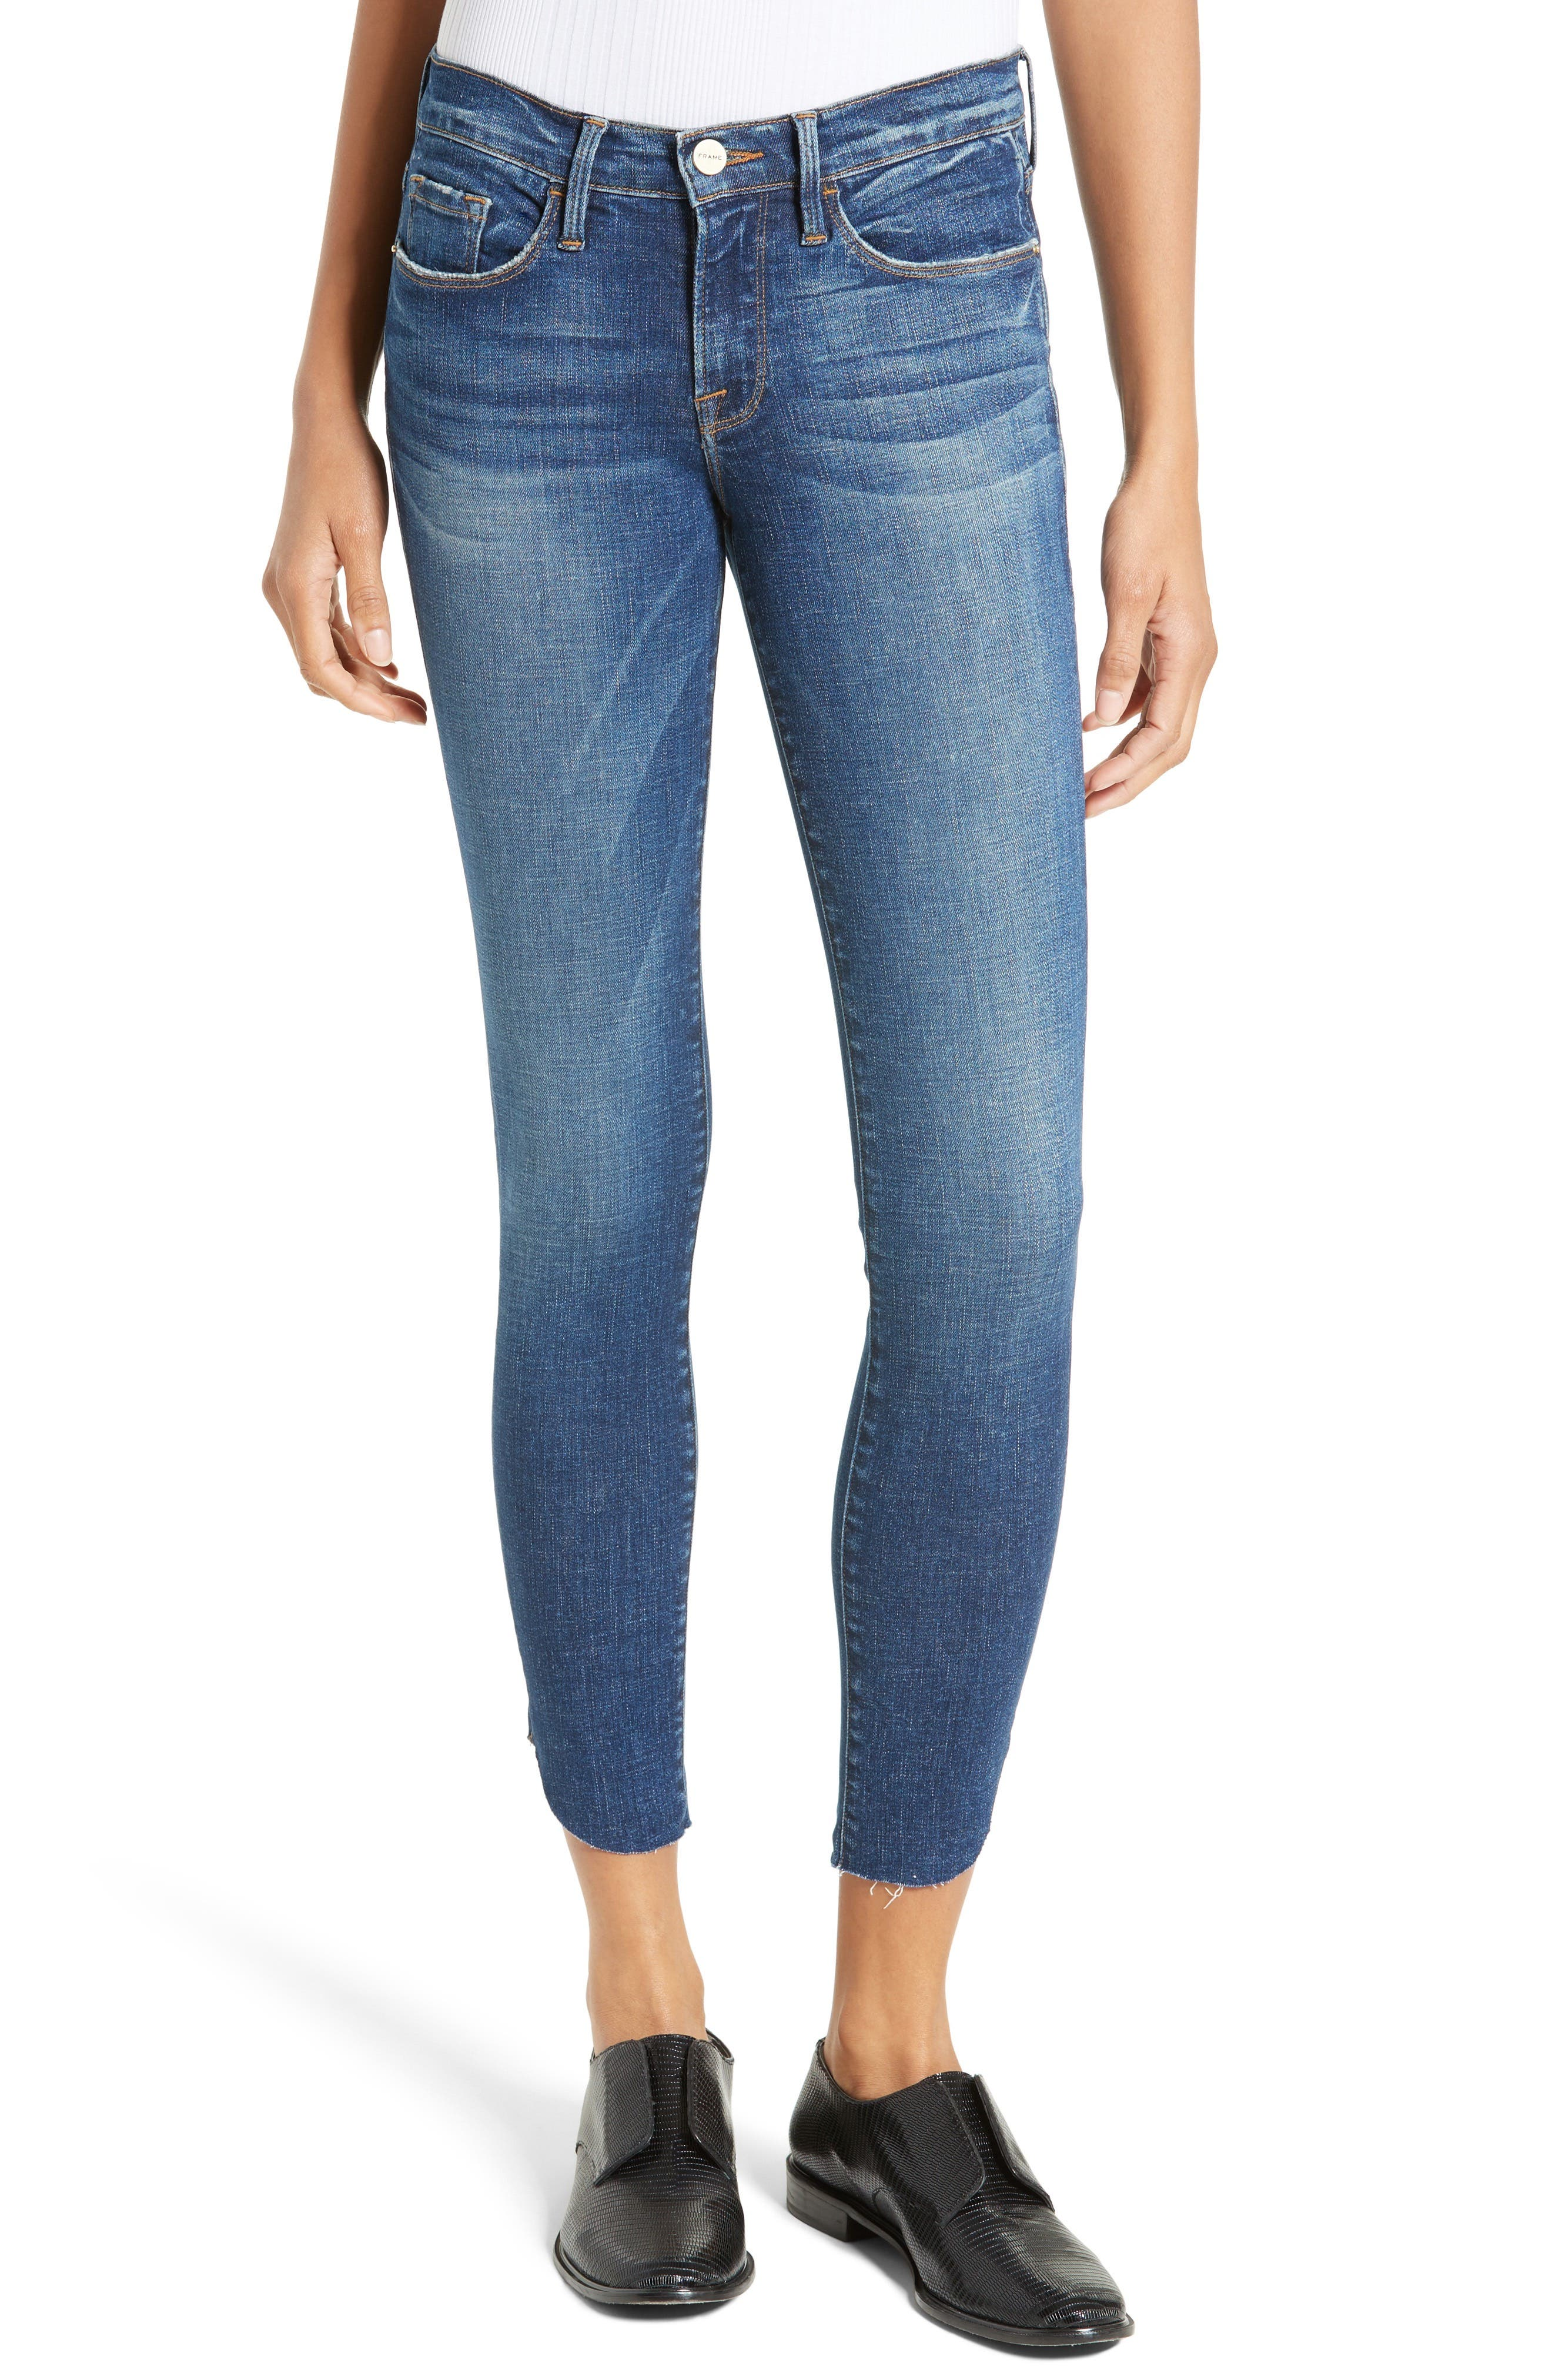 Main Image - FRAME Le Skinny Raw Tulip Crop Jeans (York) (Nordstrom Exclusive)